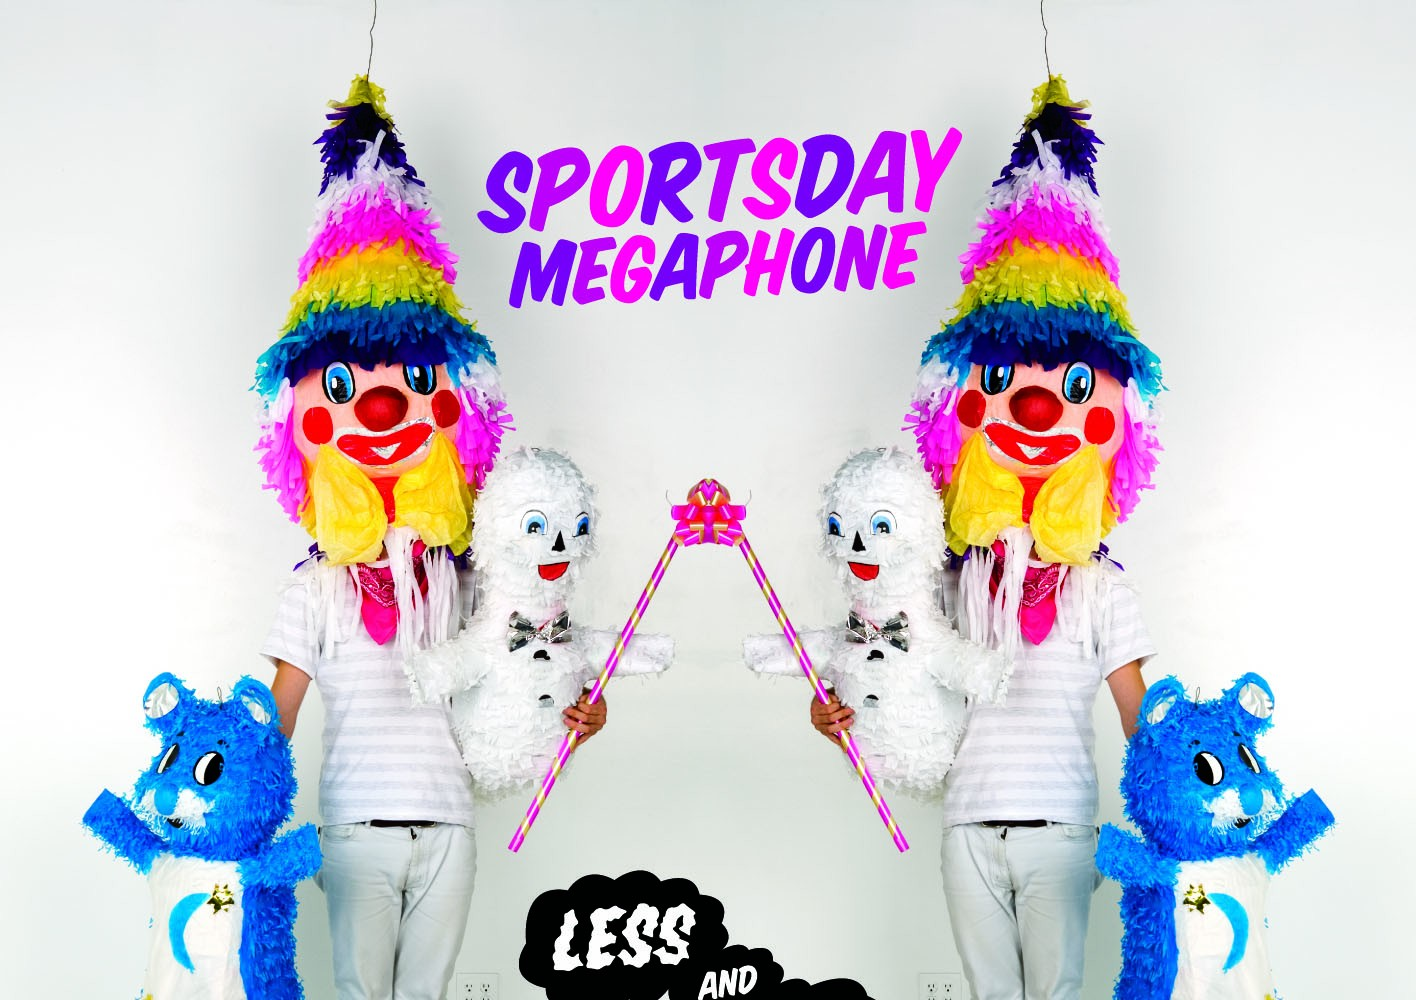 SBEST43D - SPORTSDAY MEGAPHONE - LESS AND LESS EP